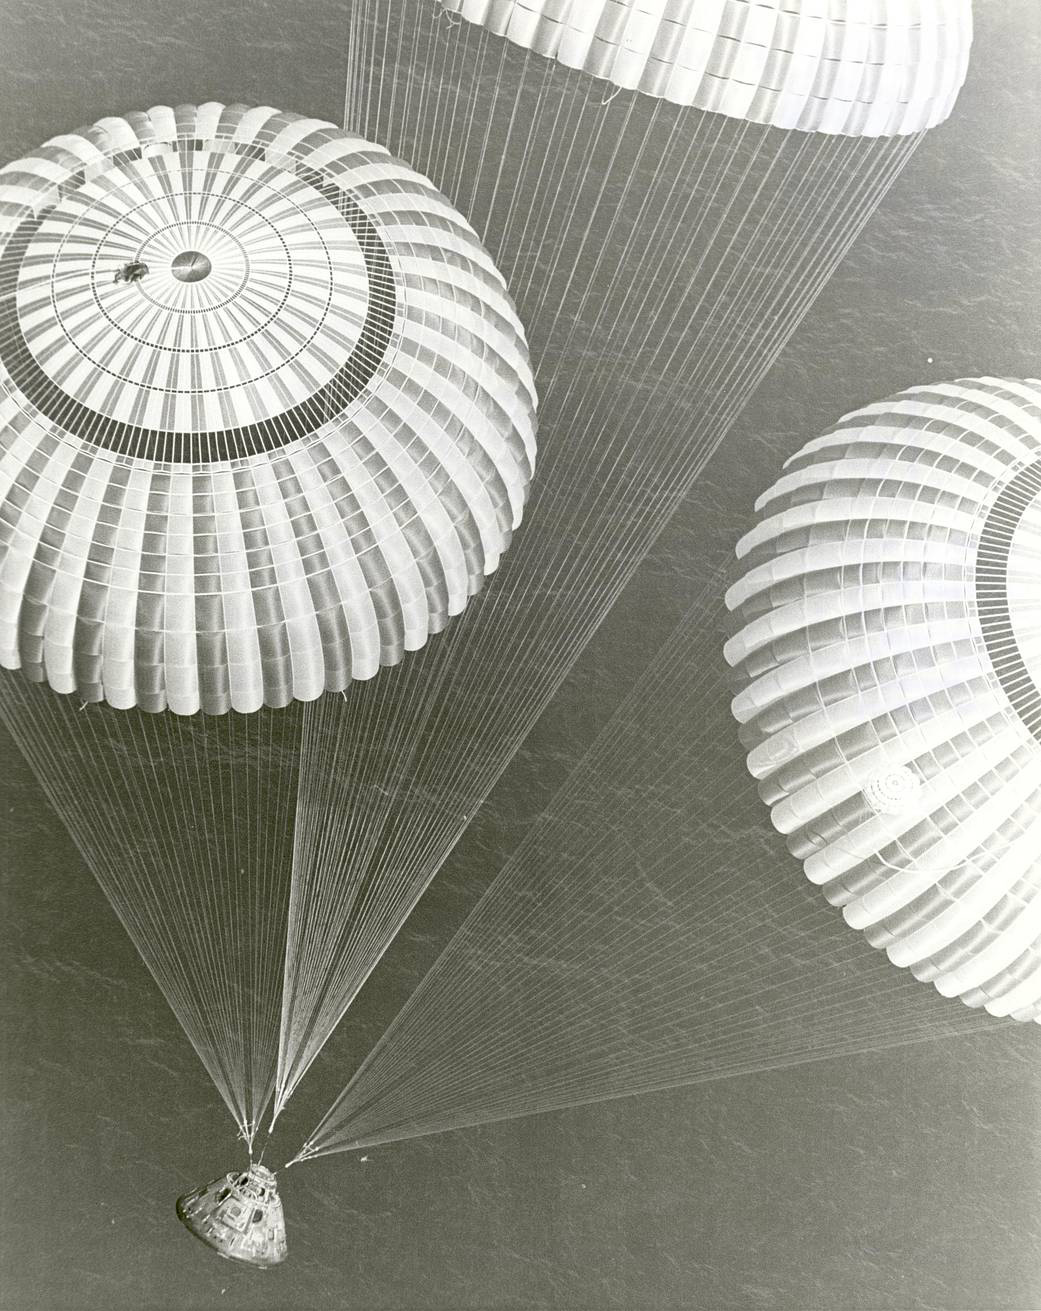 Apollo 17 module and parachutes landing over ocean